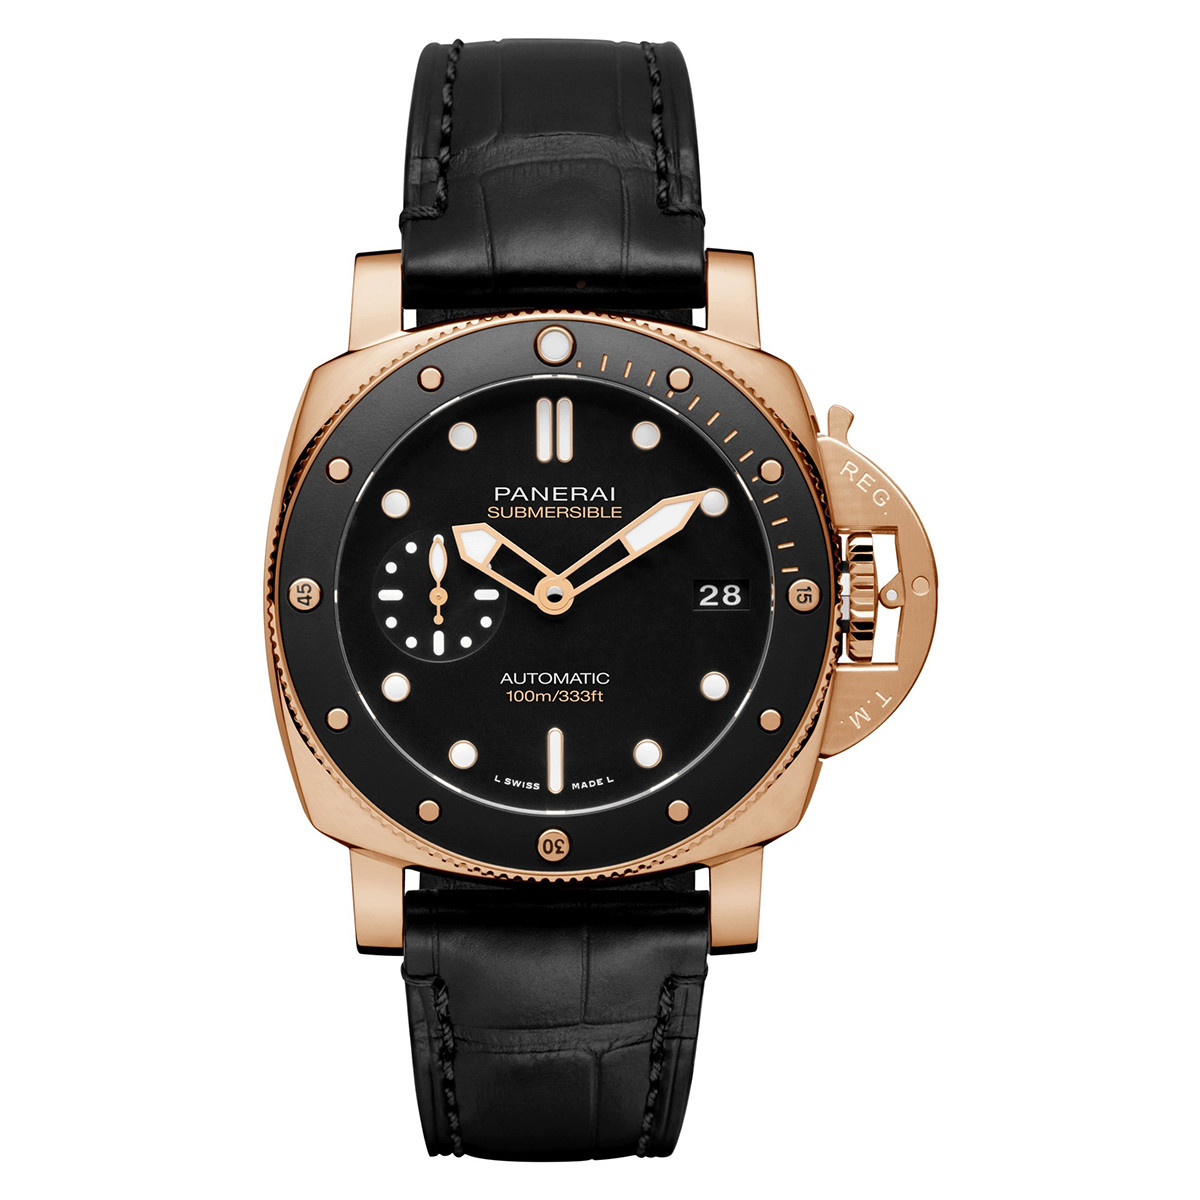 Luminor Submersible 42mm Goldtech (PAM00974)